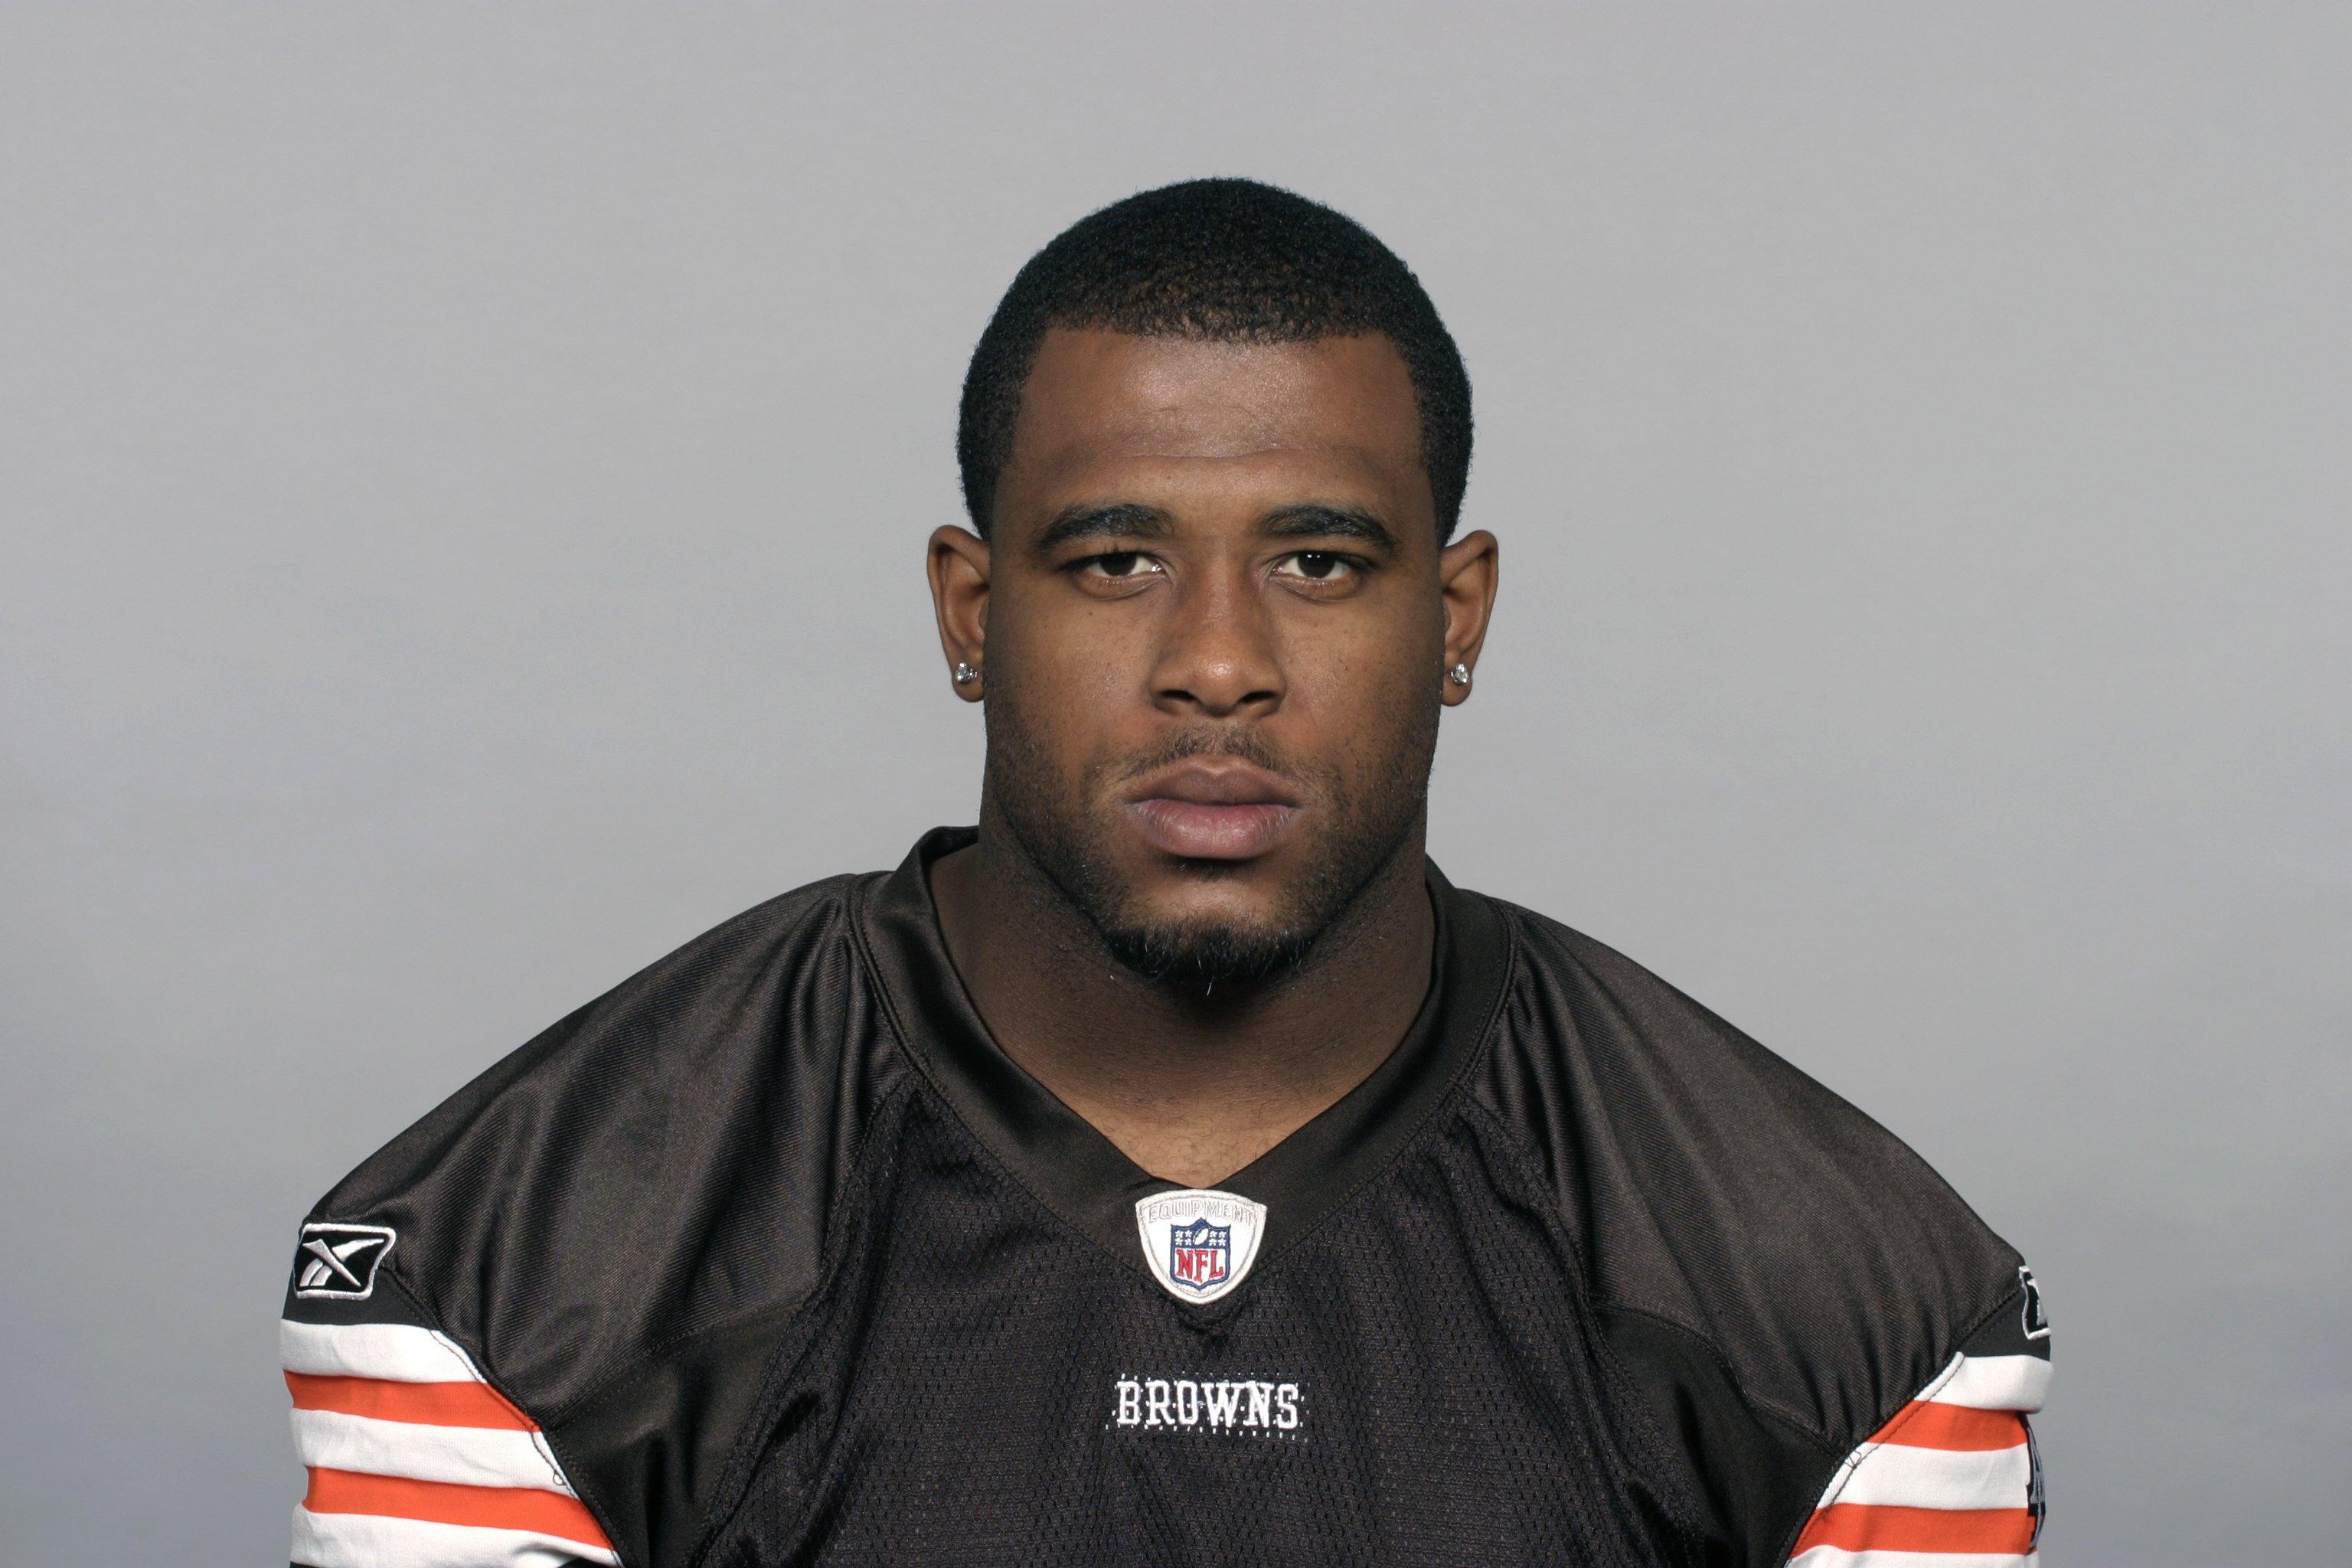 CLEVELAND - 2009:  Lawrence Vickers of the Cleveland Browns poses for his 2009 NFL headshot at photo day in Cleveland, Ohio. (Photo by NFL Photos)